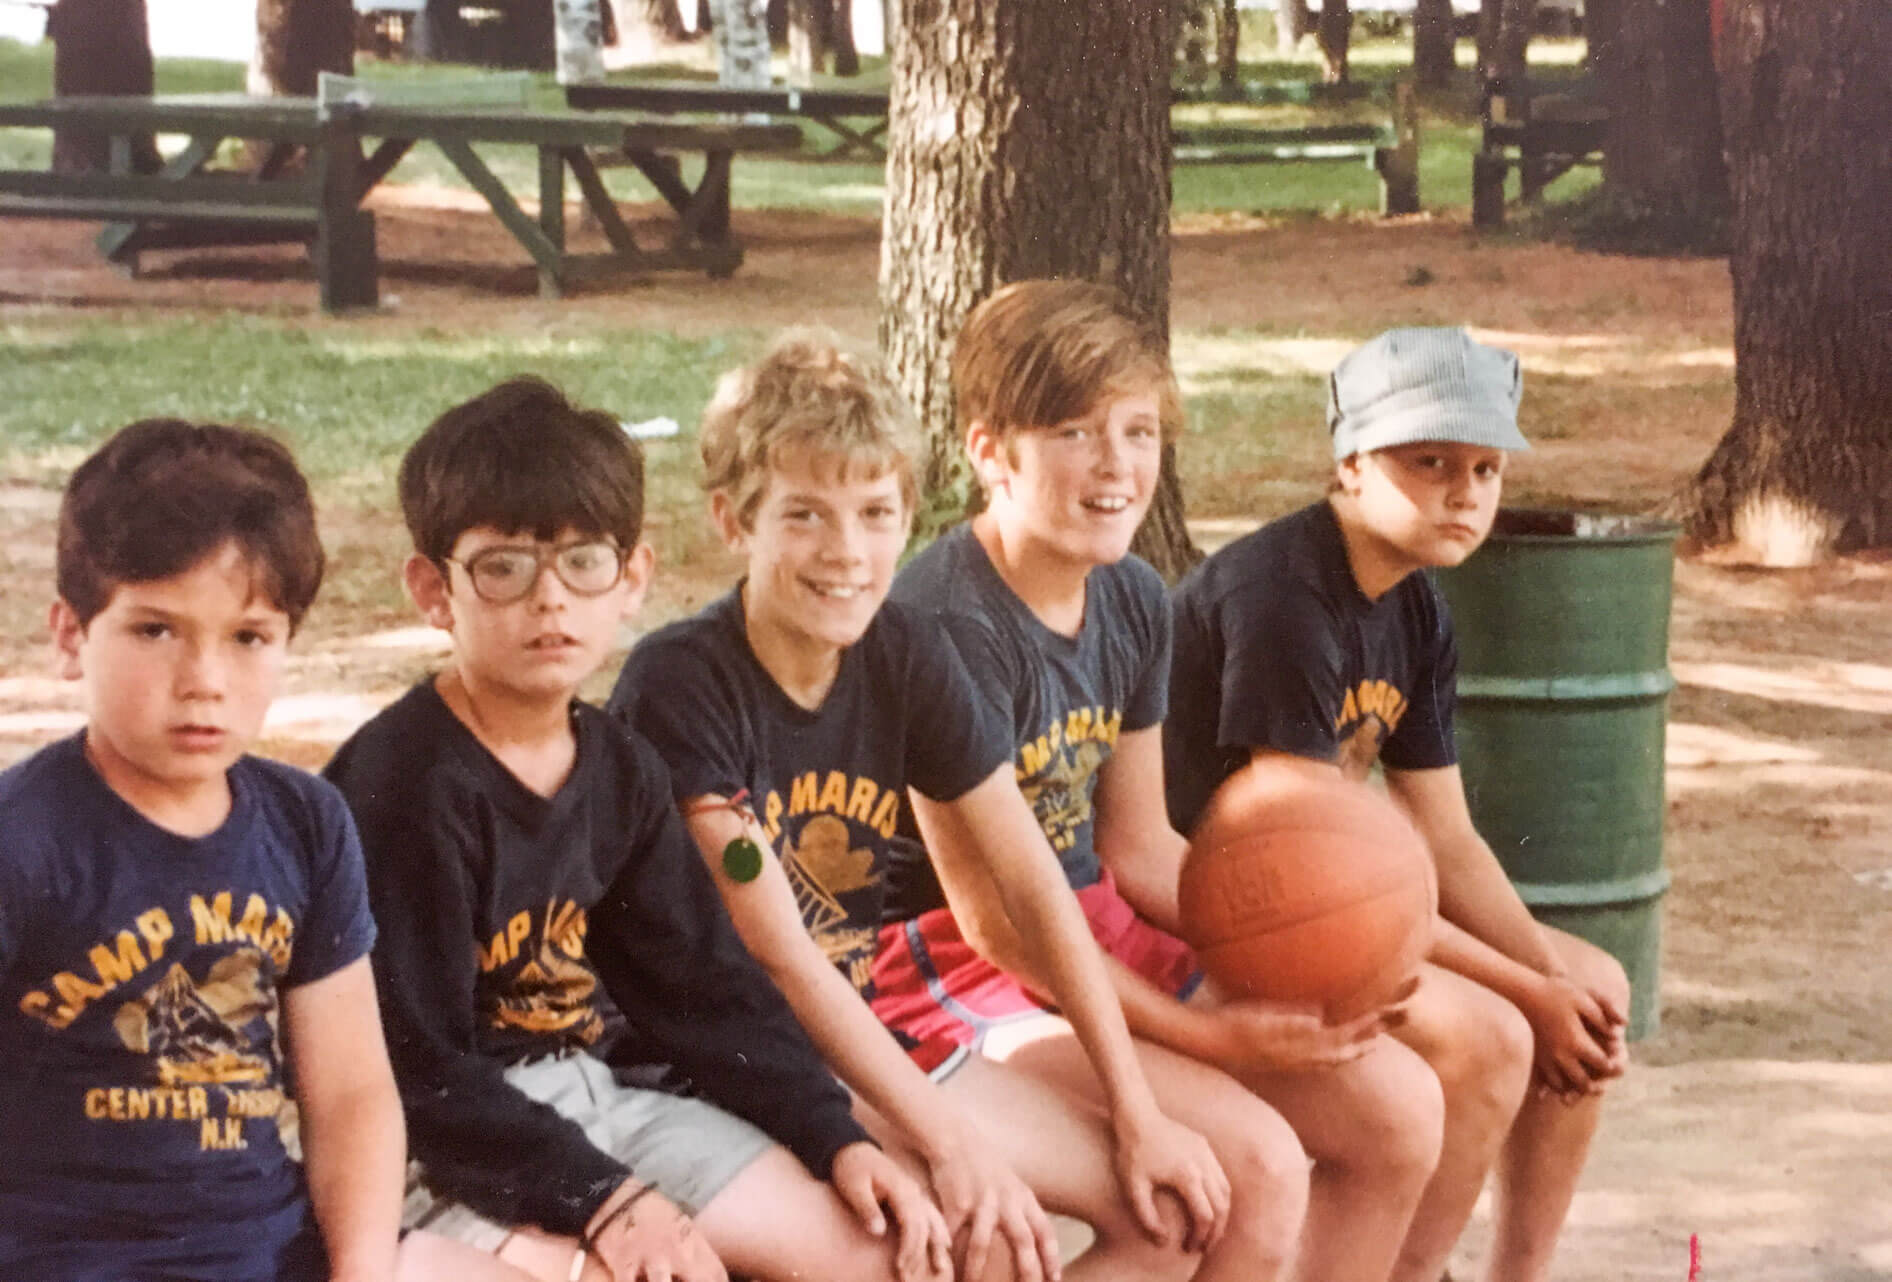 Throwback photo of campers sitting on bench